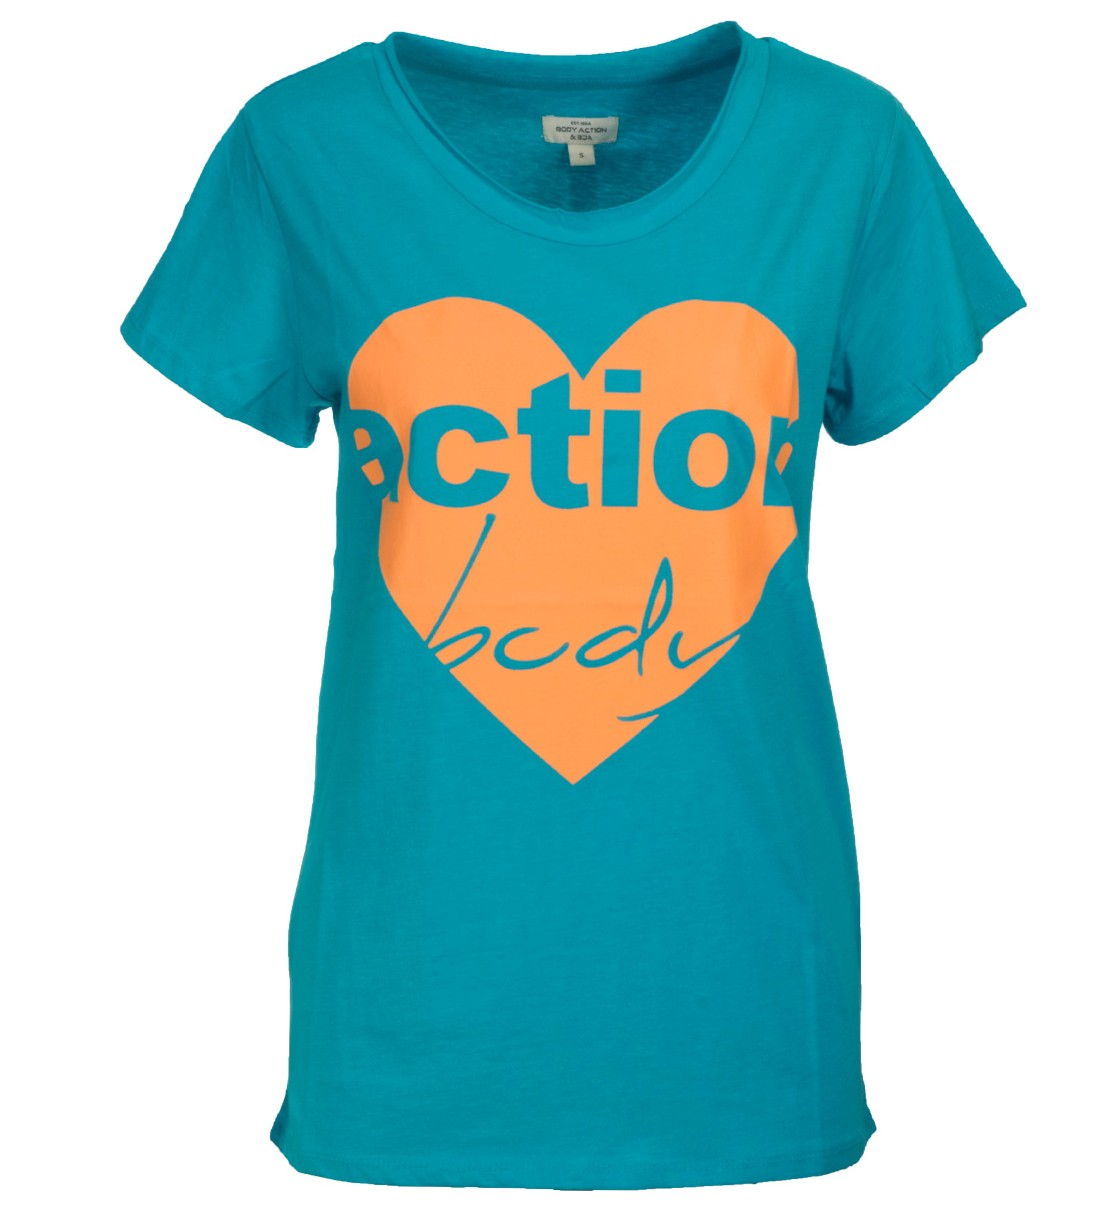 Body Action WOMEN OVERSIZED S/S T-SHIRT